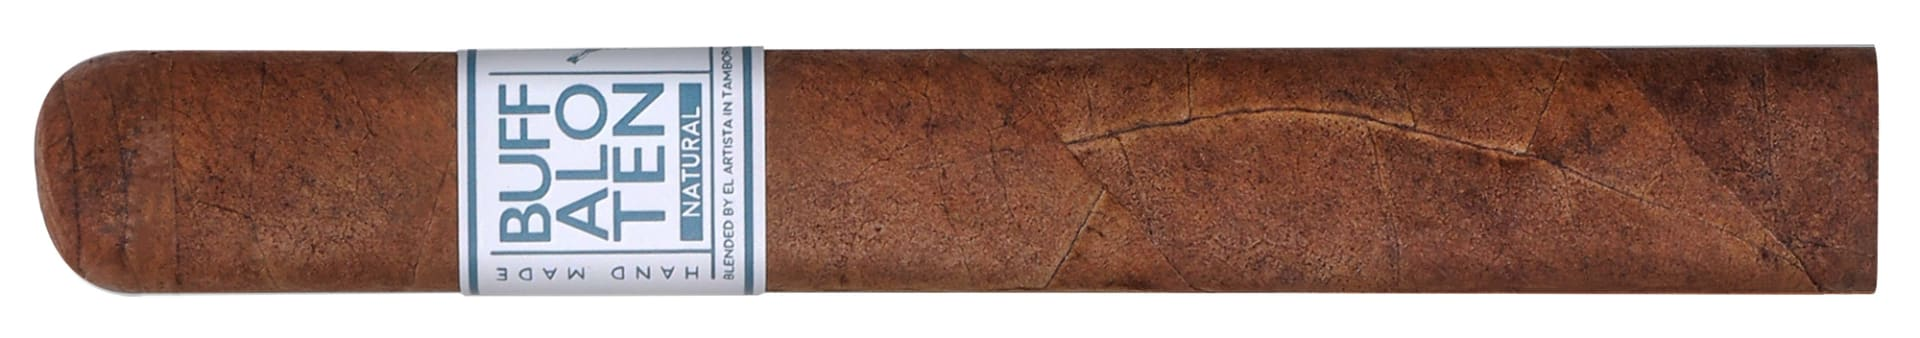 El Artista Cigars Adding Buffalo TEN Natural and Fugly Cheroots Claro Featured Image